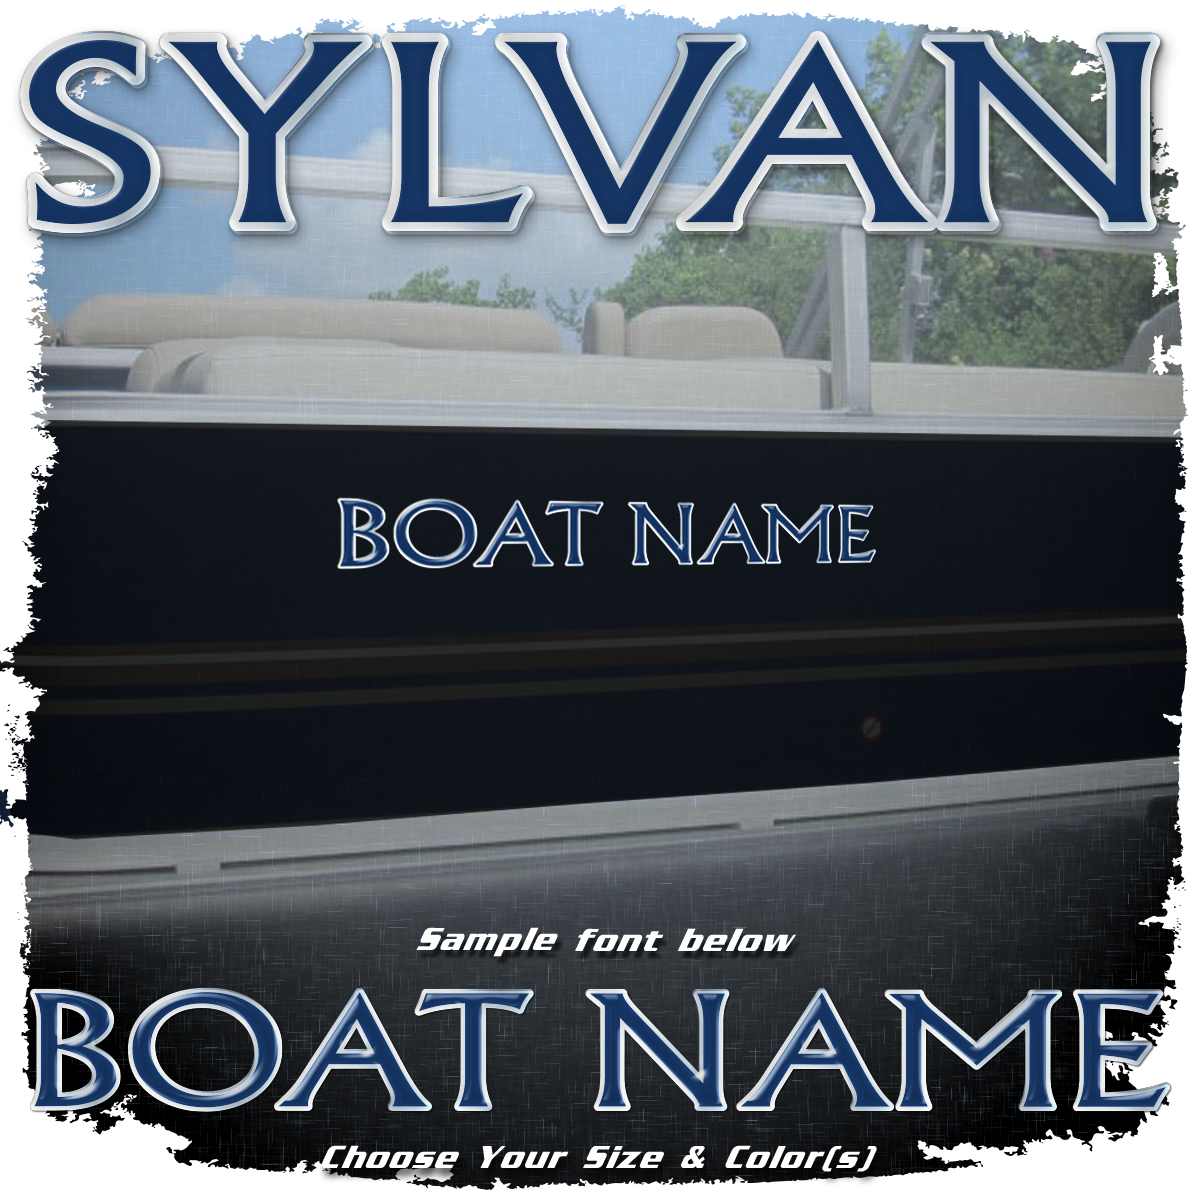 Domed Boat Name in the Sylvan Font, Choose Your Own Colors